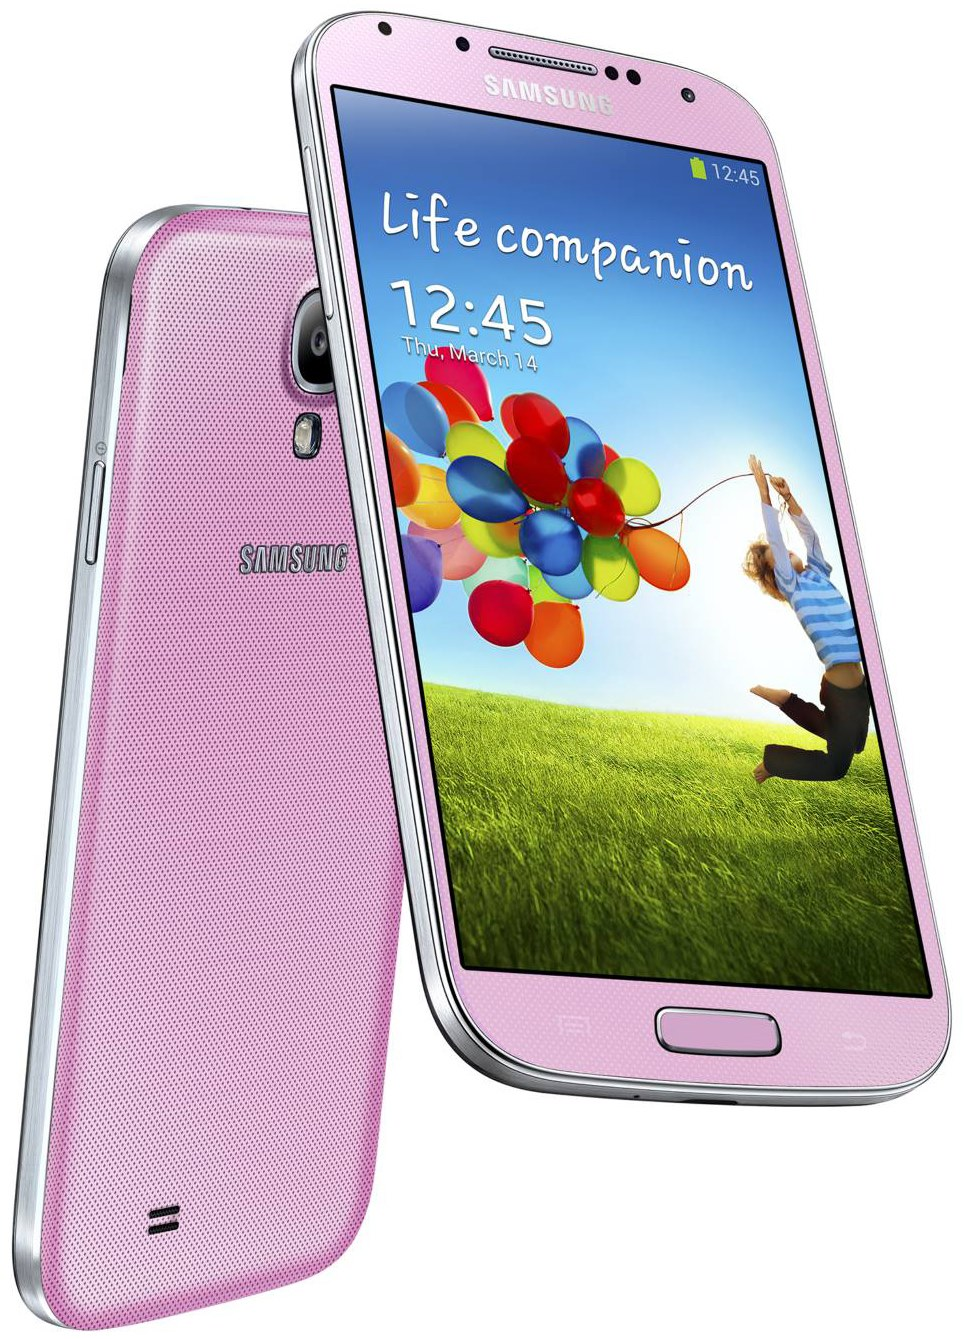 Samsung--Galaxy-s4-Pink-Colour